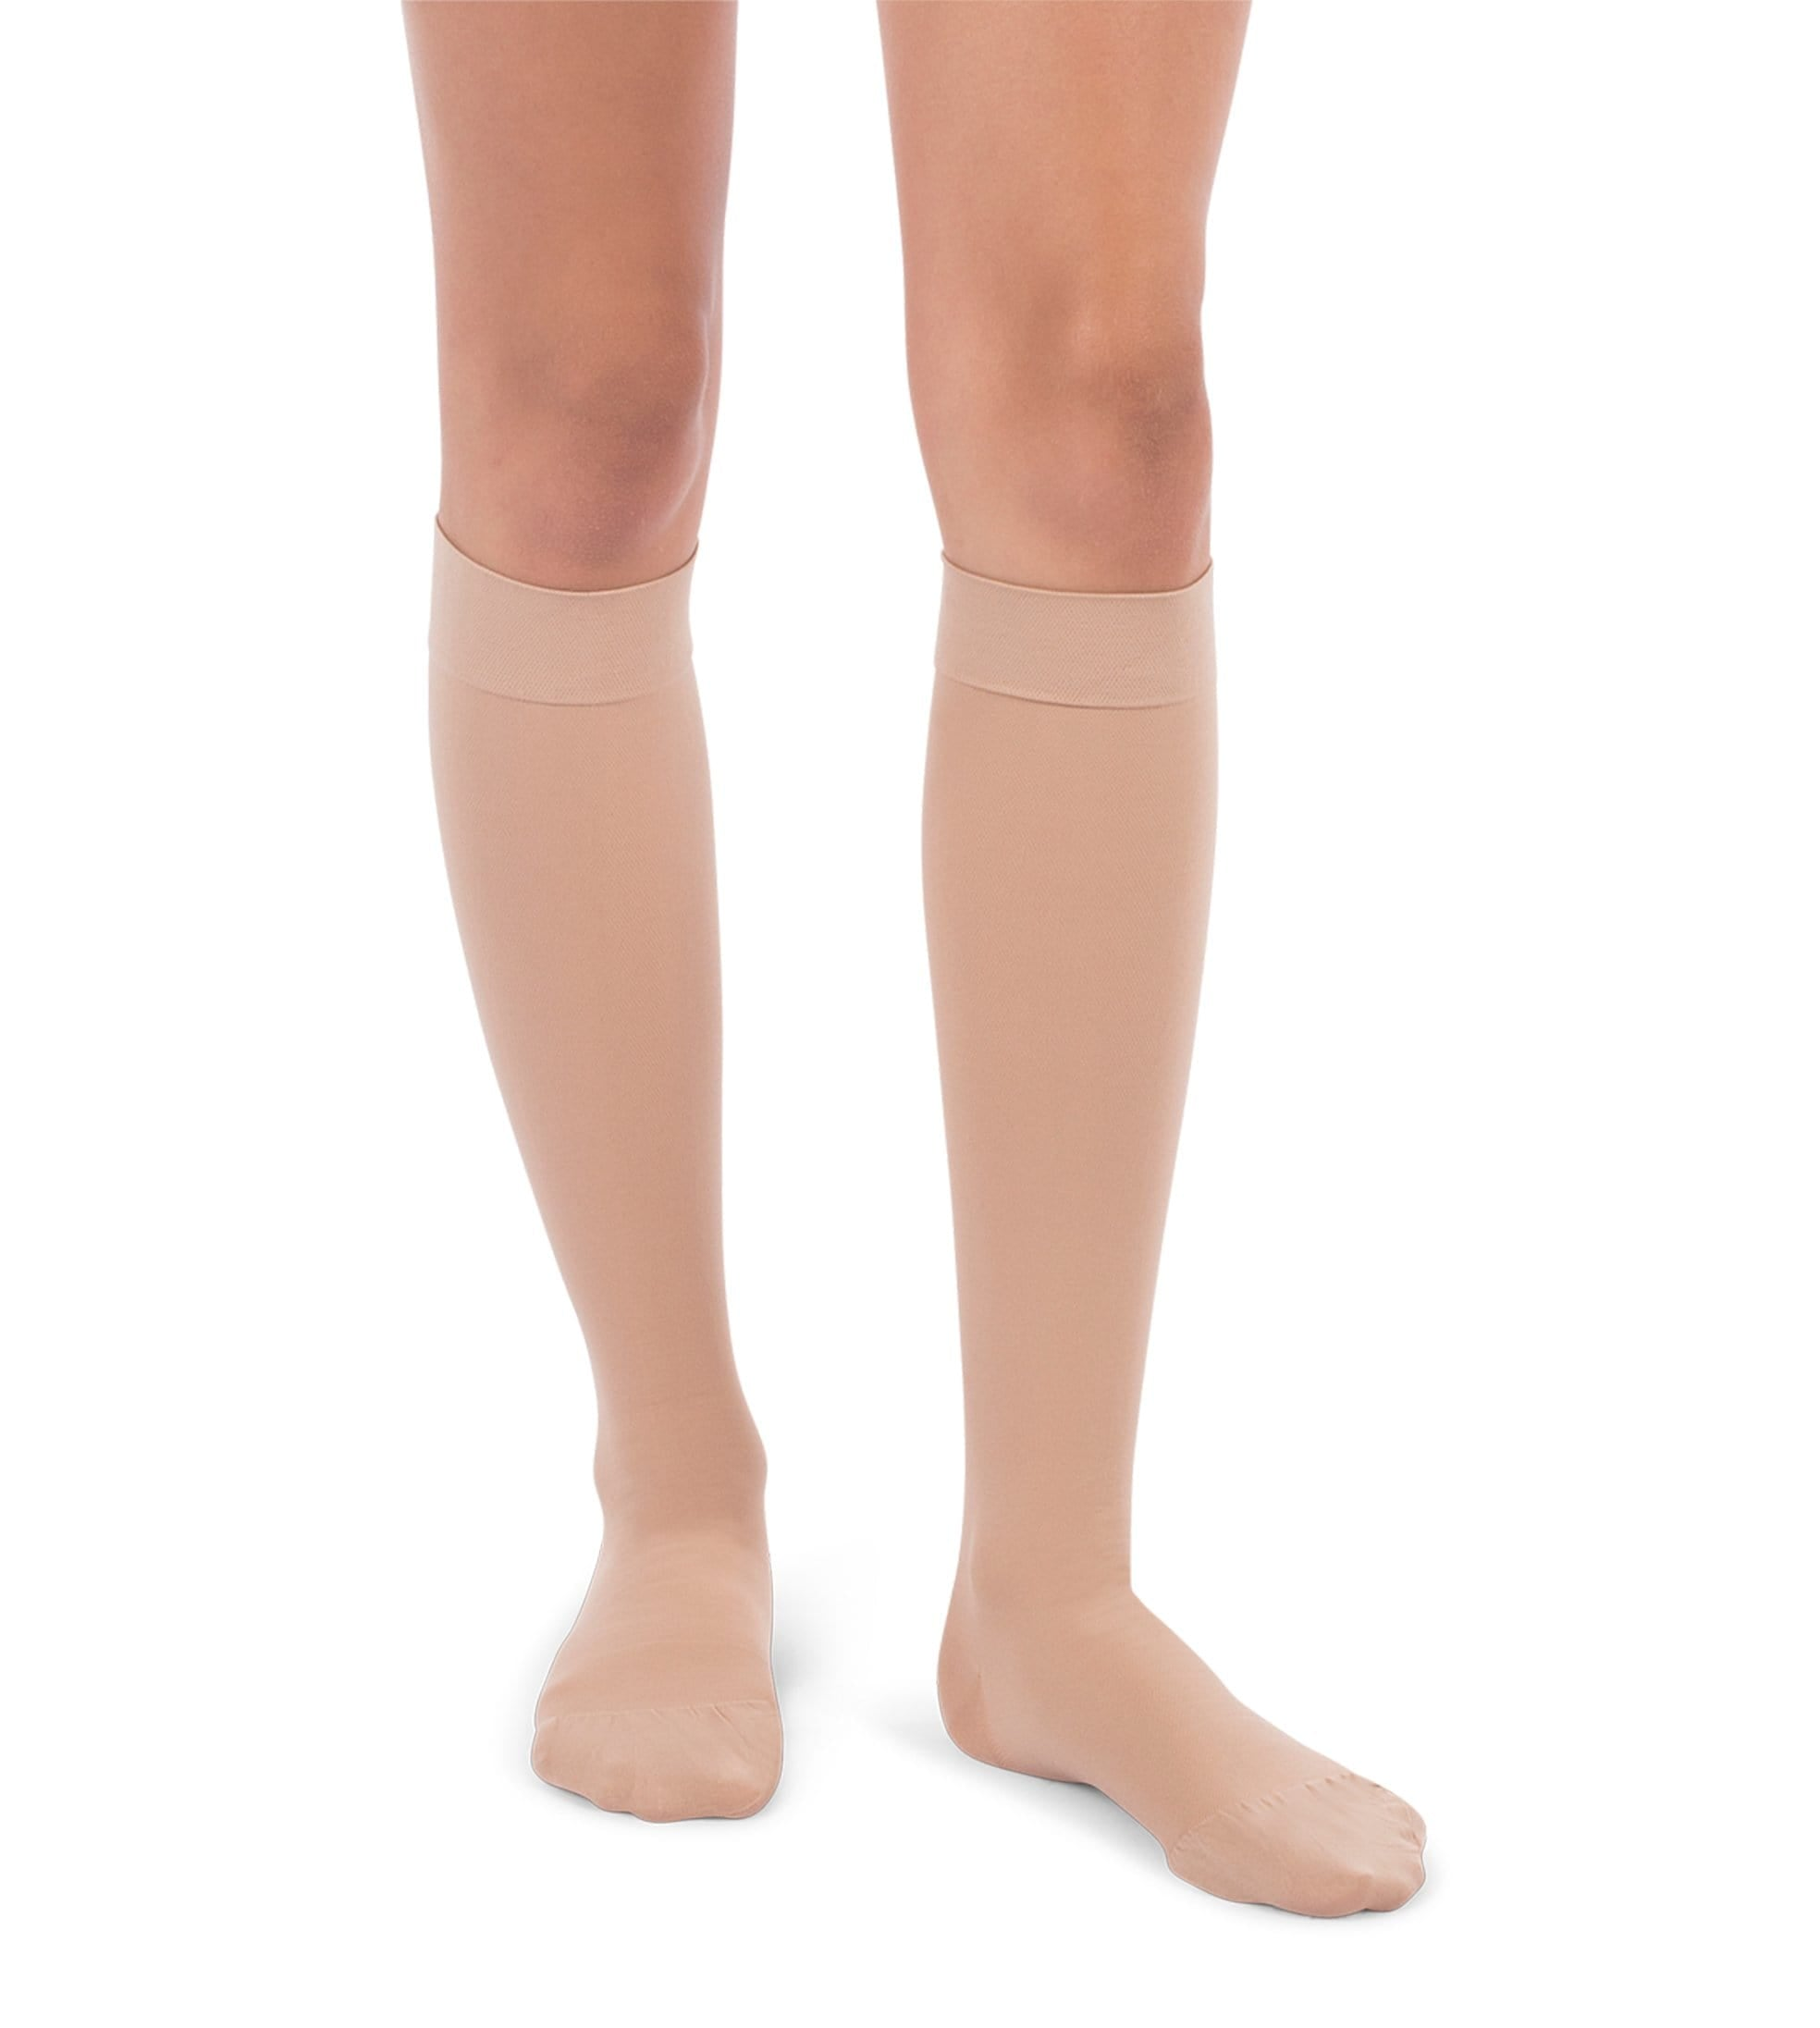 Knee High Compression Stockings, 20-30mmHg Surgical Weight Closed Toe 220